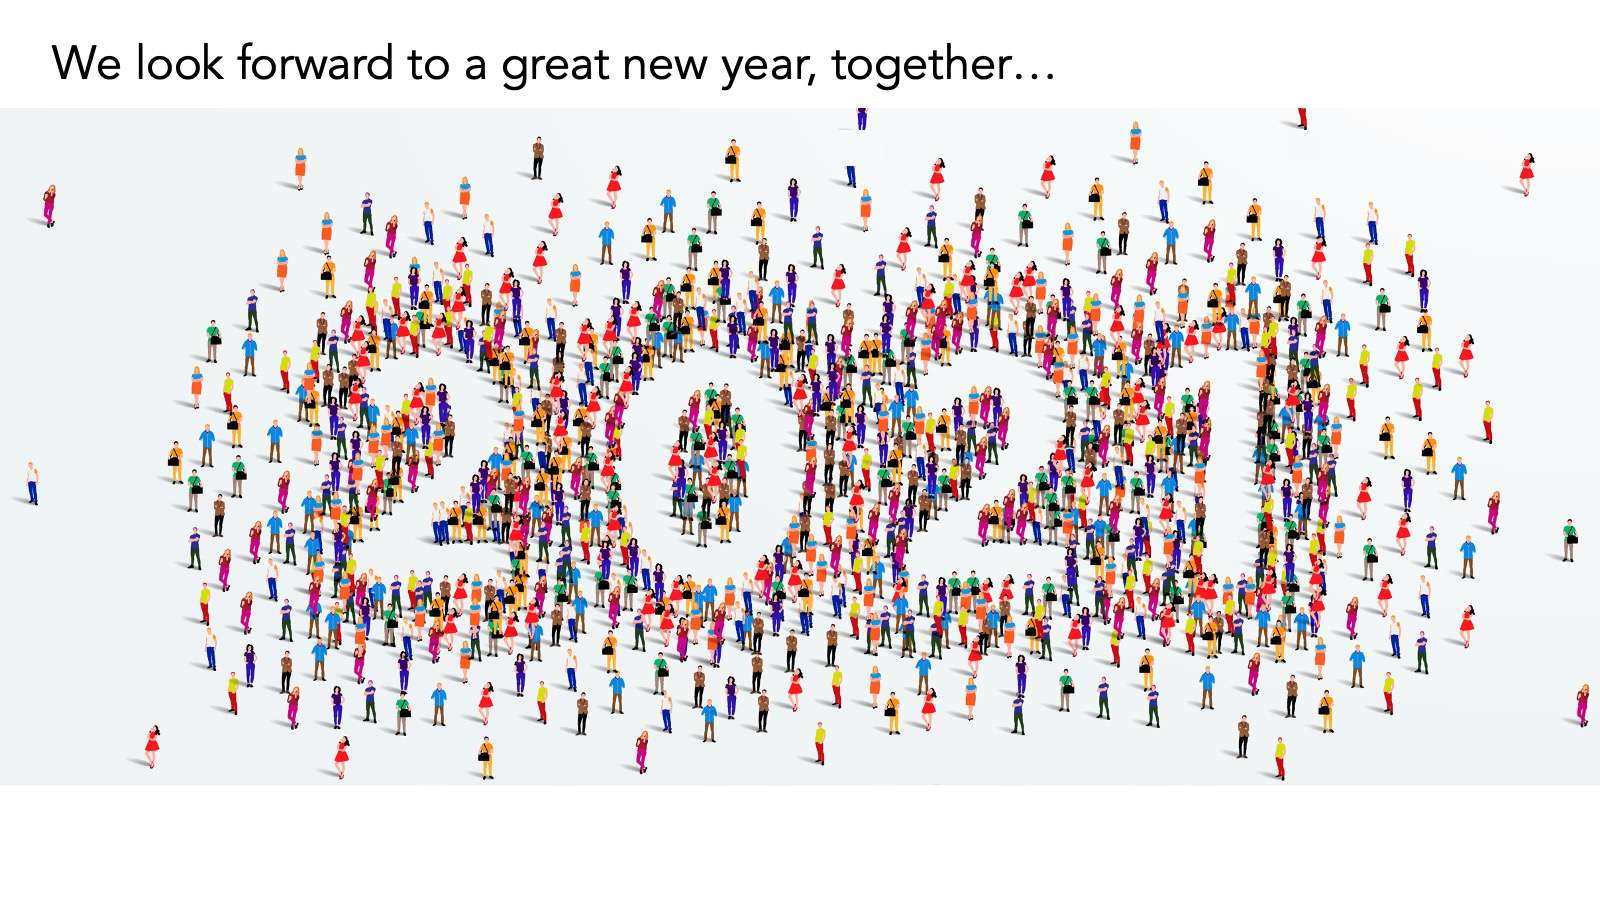 We look forward to a great New Year together